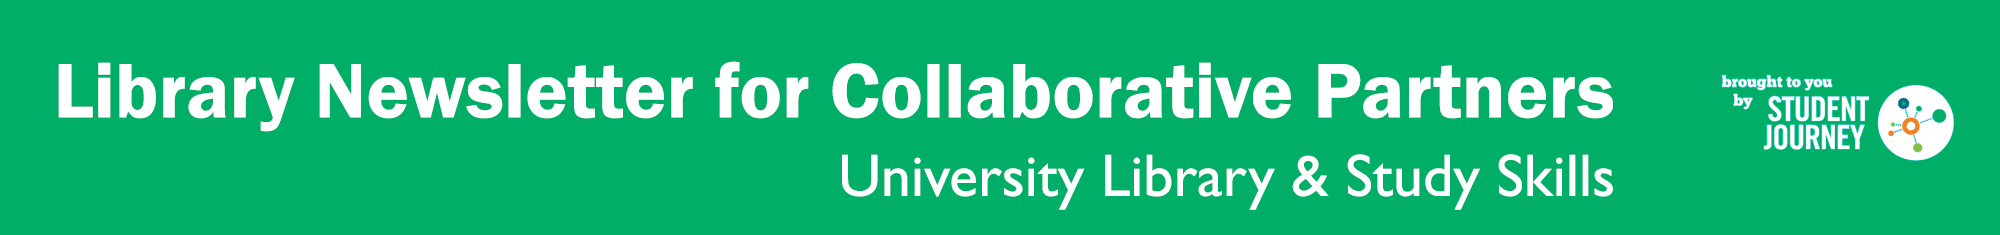 Header image: Library Newsletter for Collaborative Partners